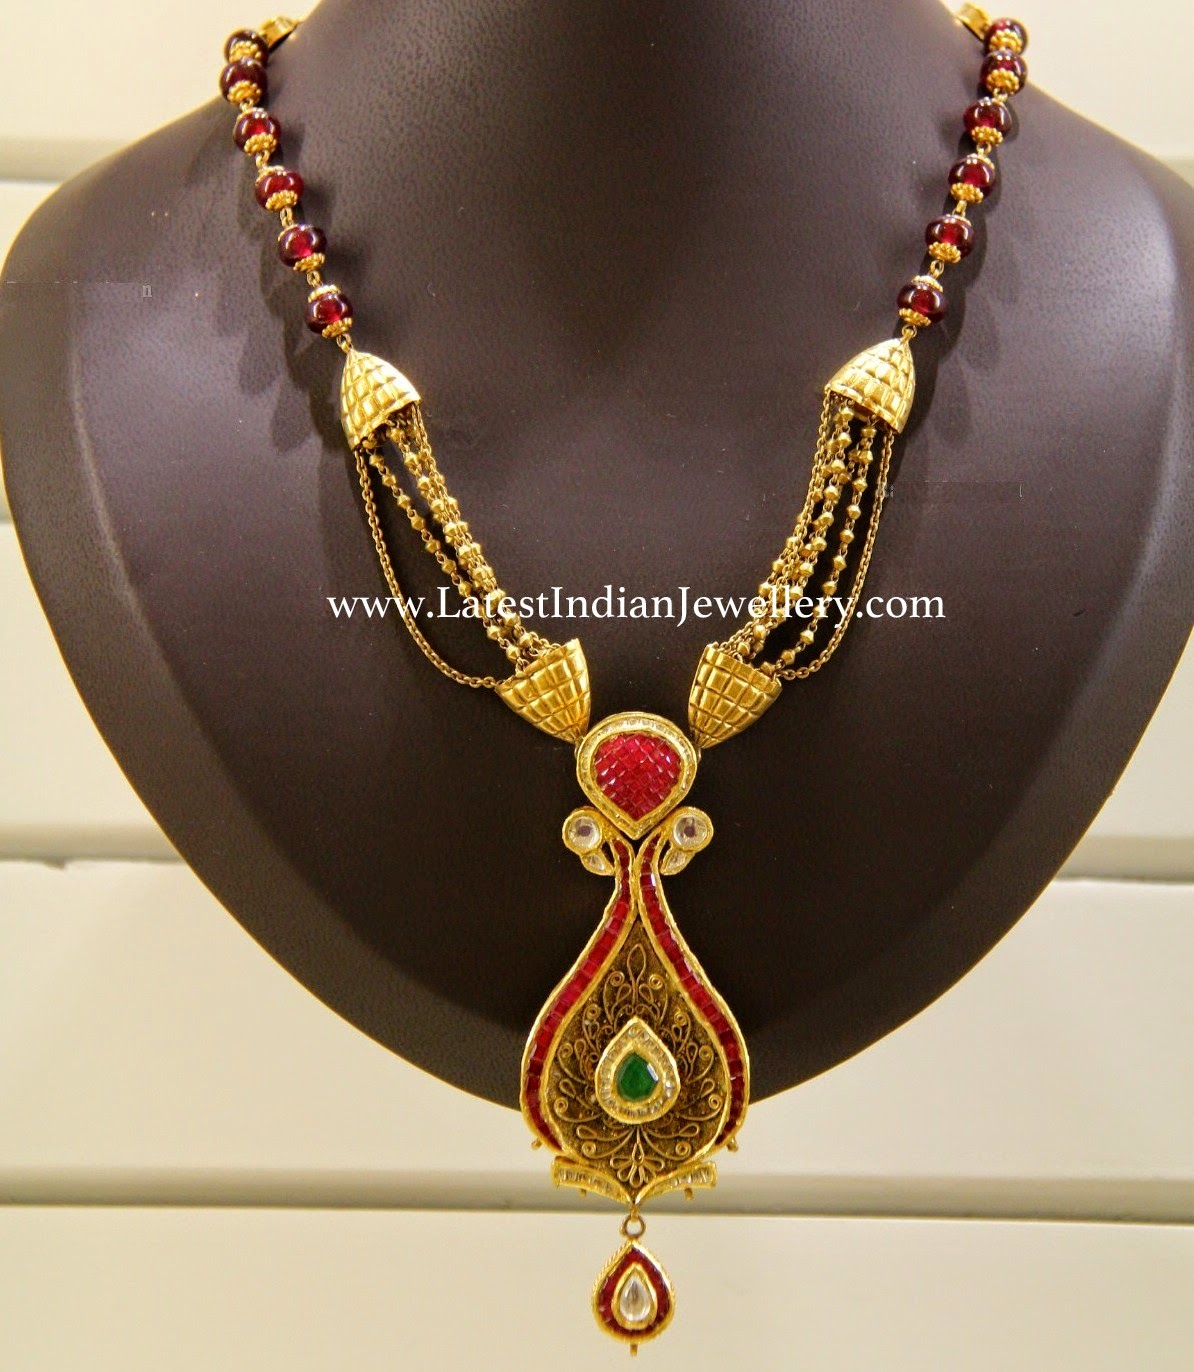 Gold Fancy Necklace with Rubies